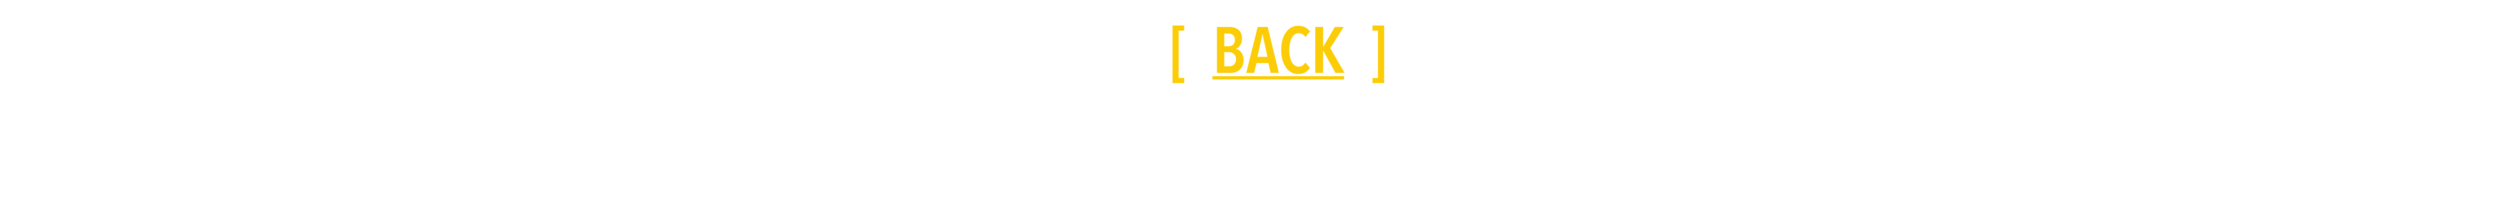 back_yellow.png